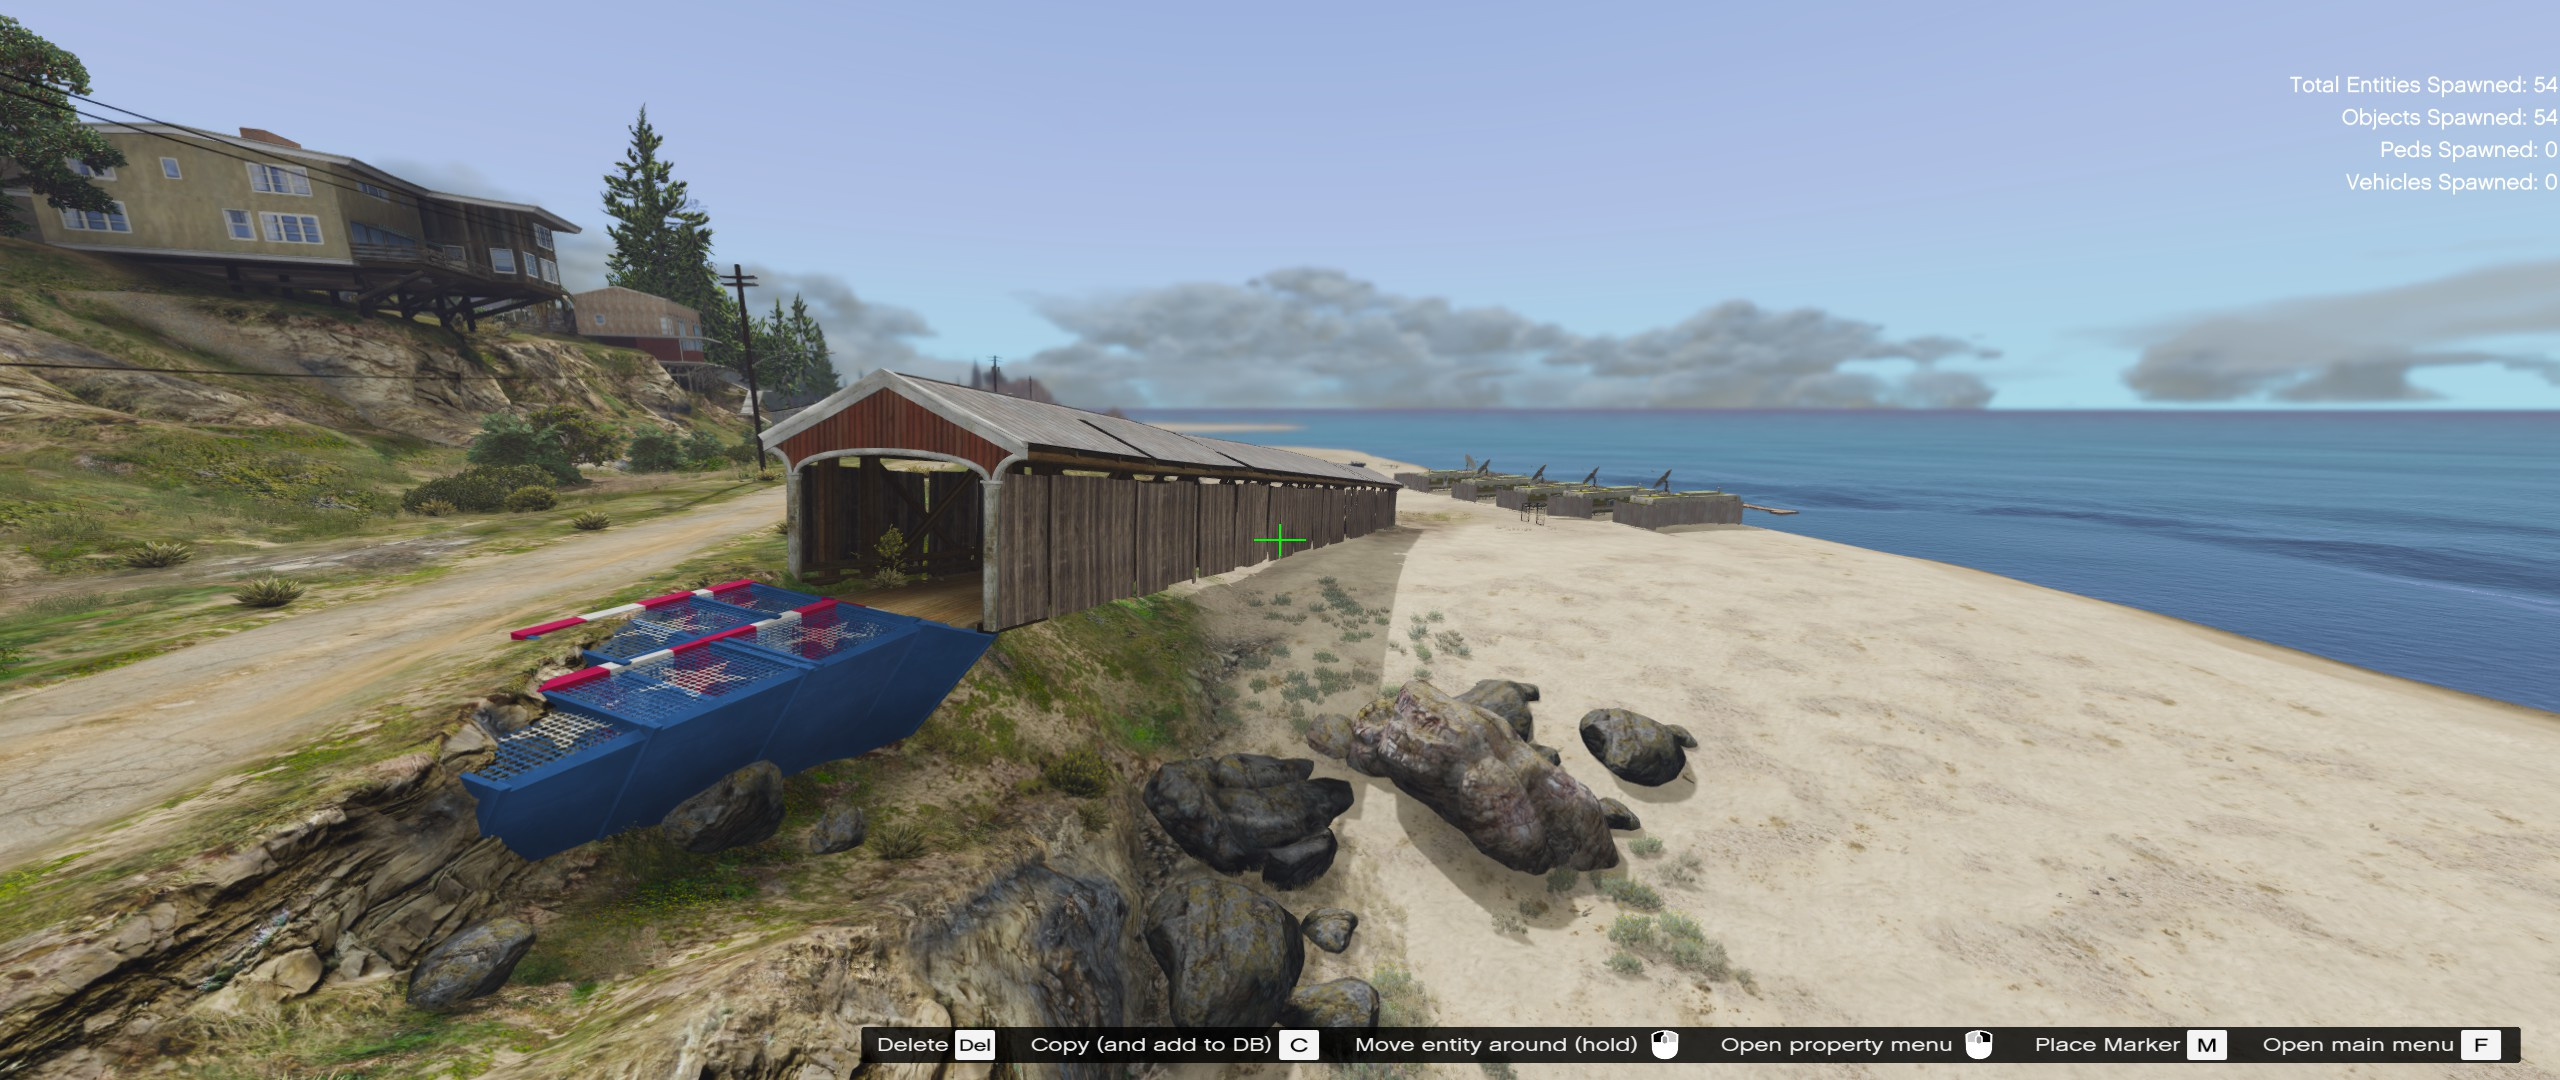 gta 5 trailer park location